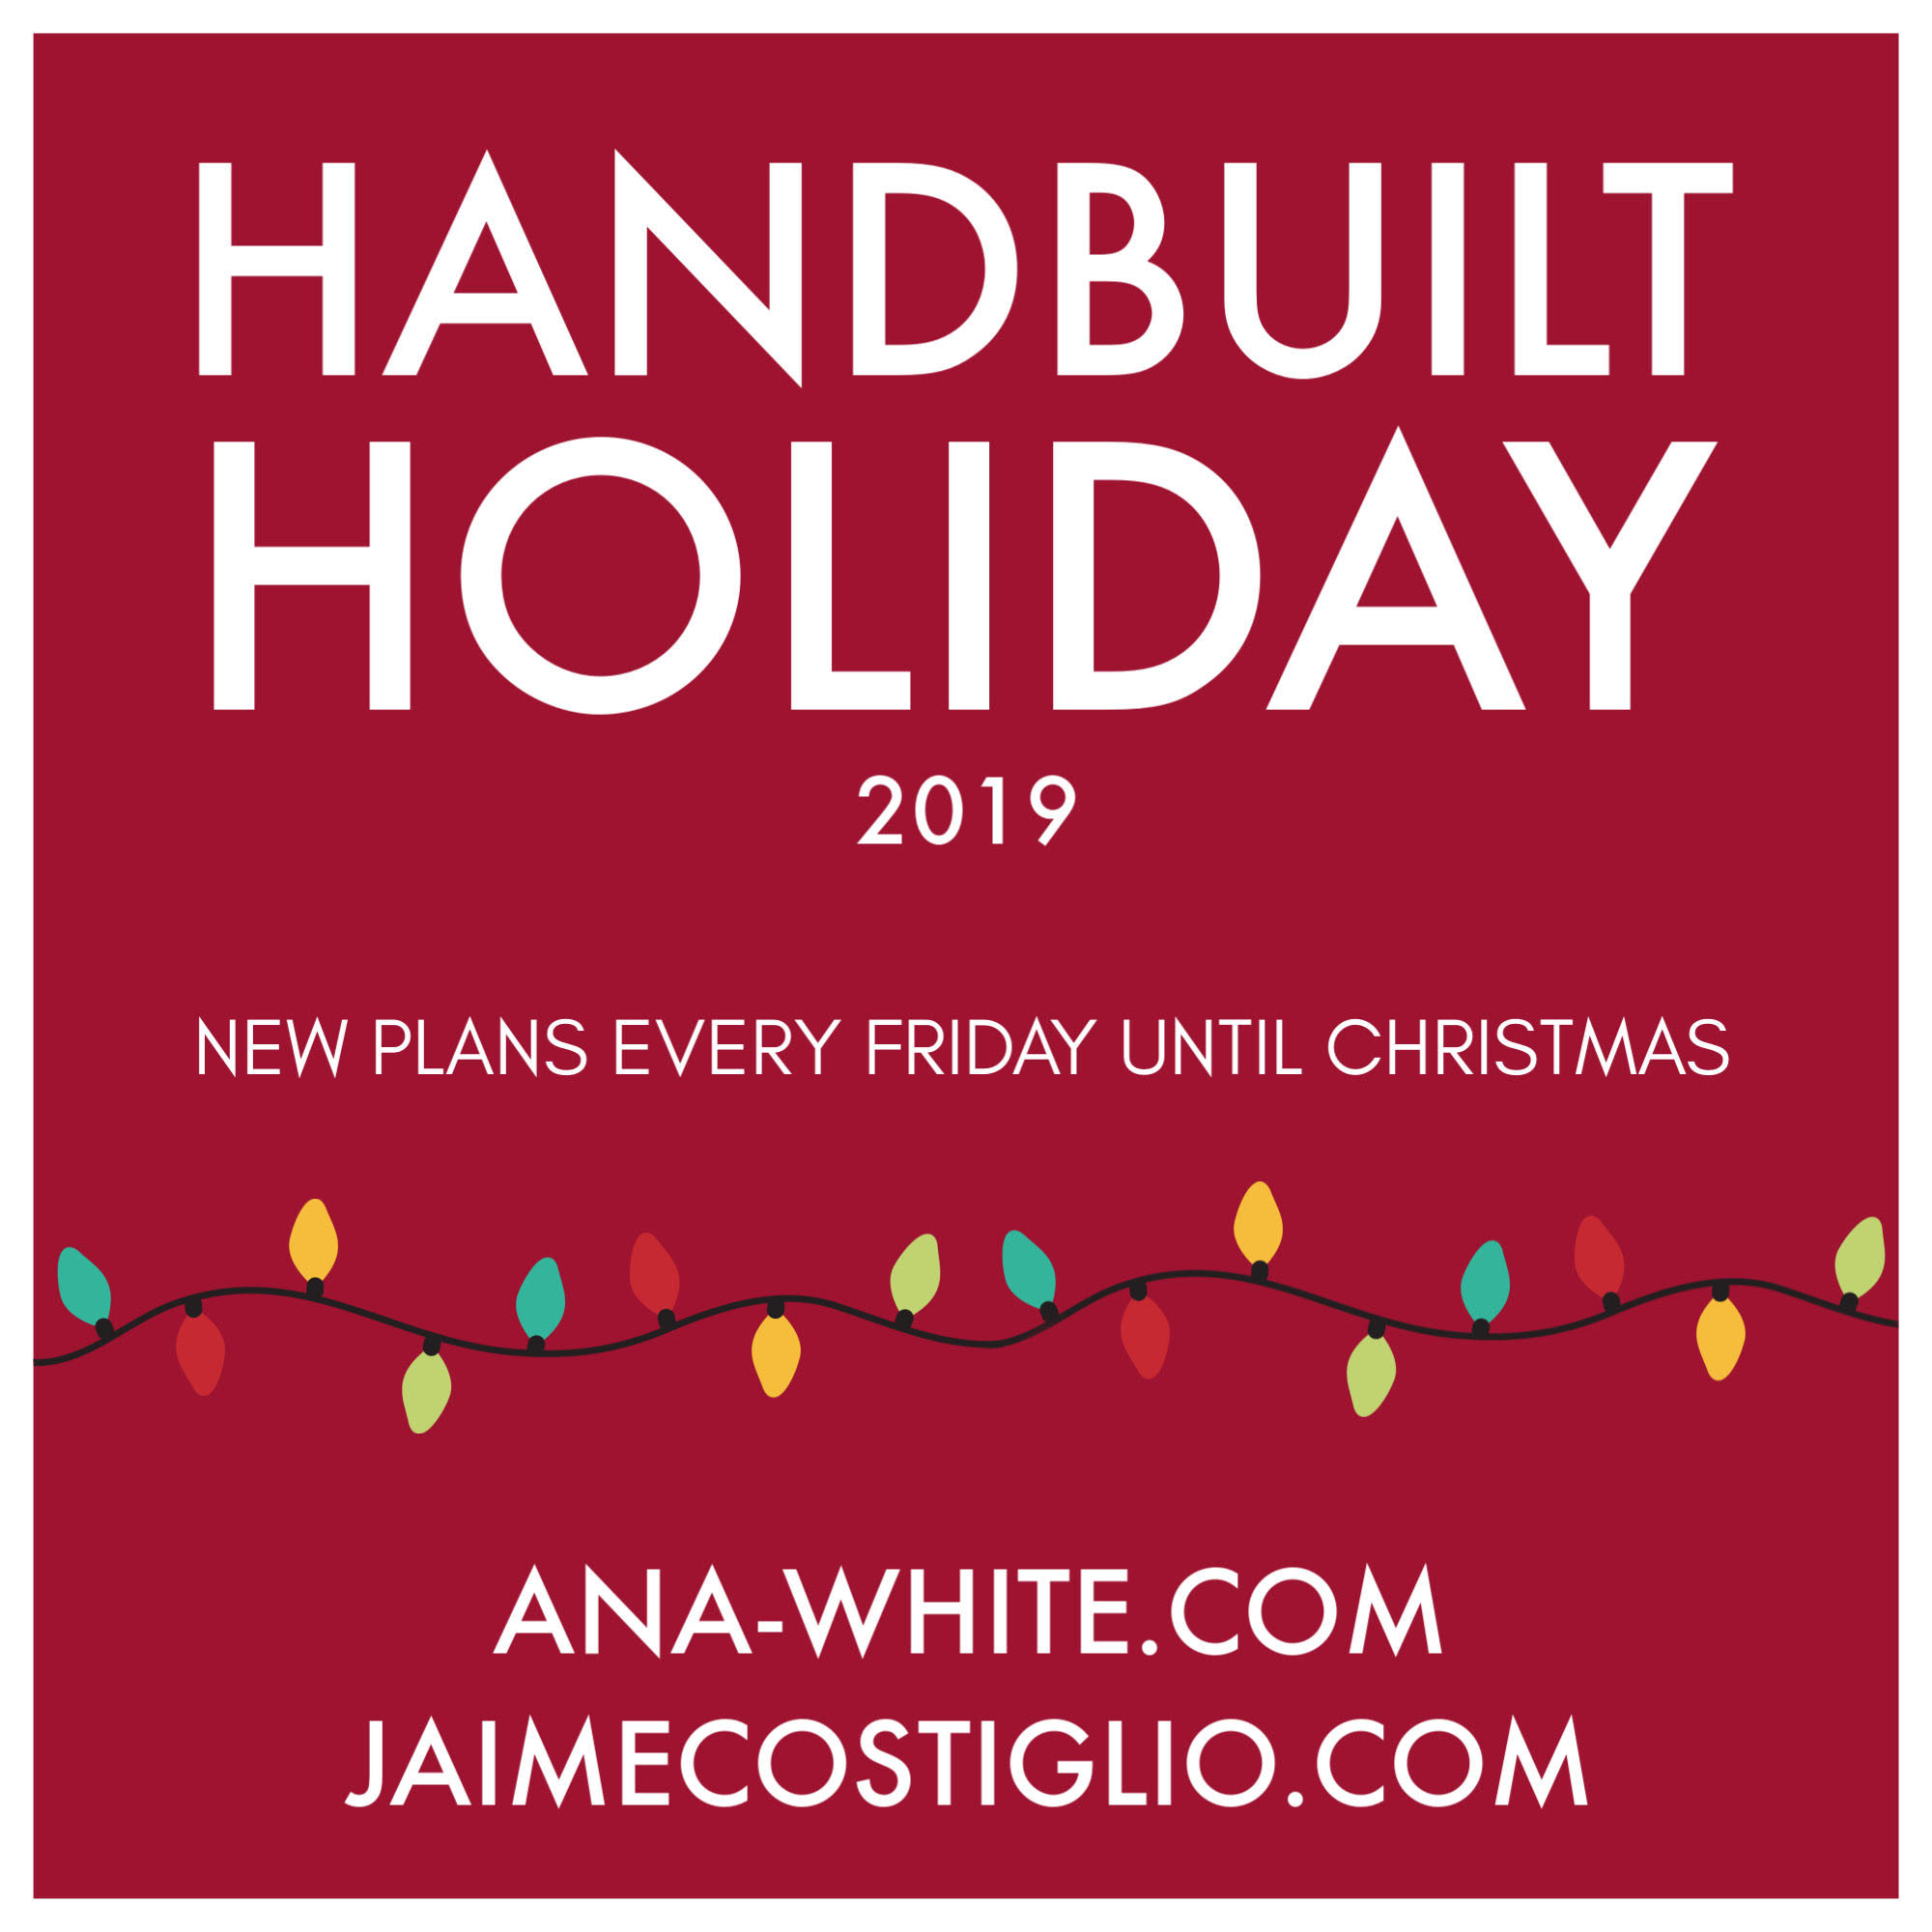 handbuilt holiday